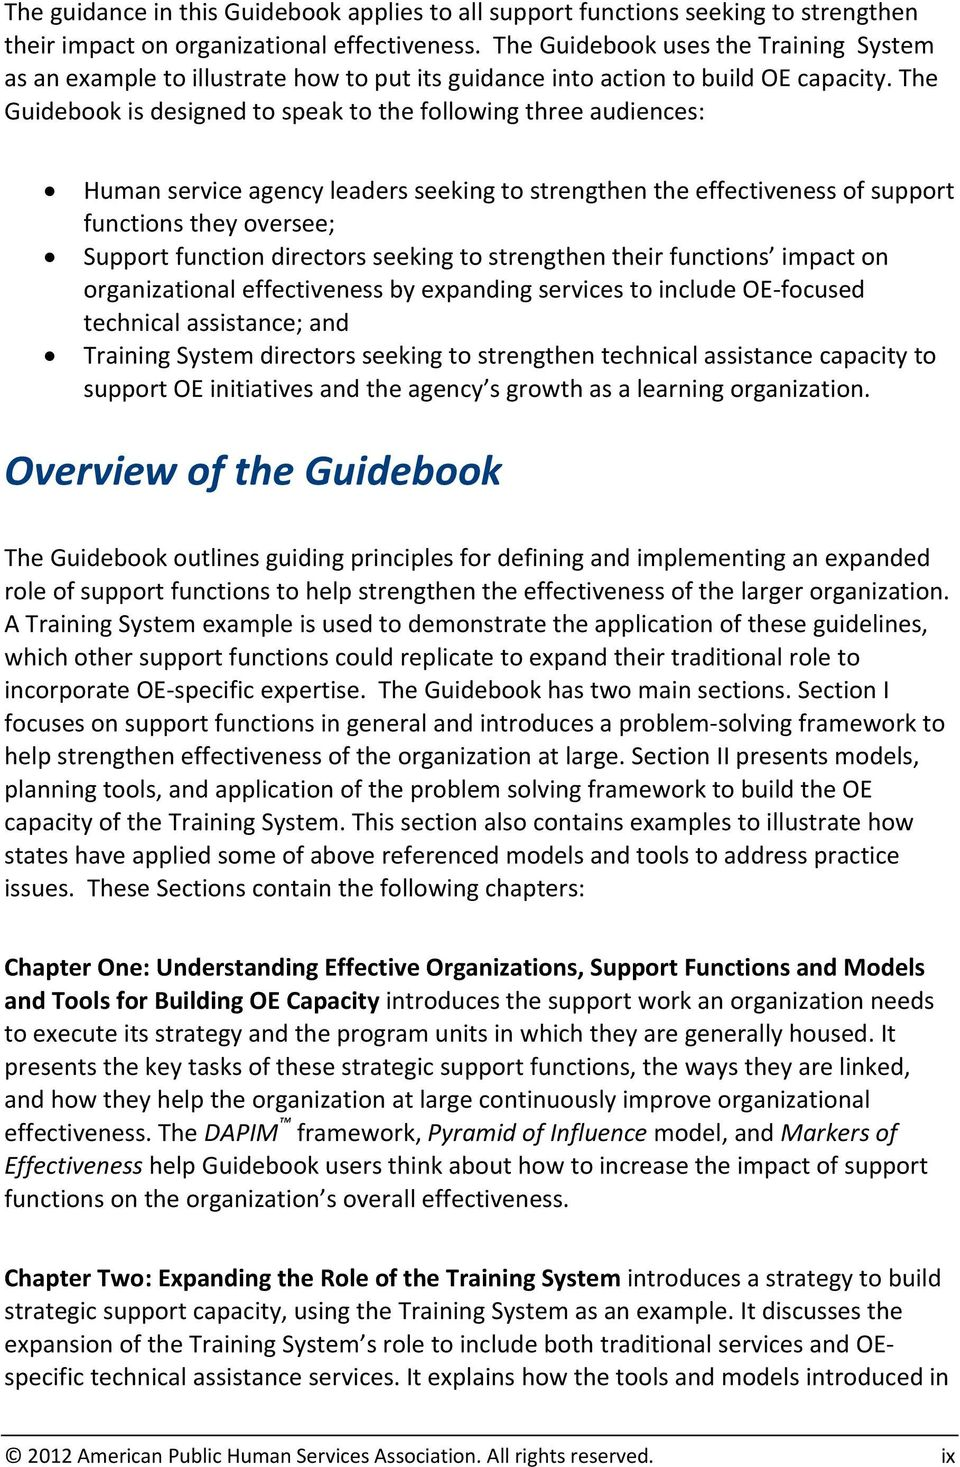 The Guidebook is designed to speak to the following three audiences: Human service agency leaders seeking to strengthen the effectiveness of support functions they oversee; Support function directors